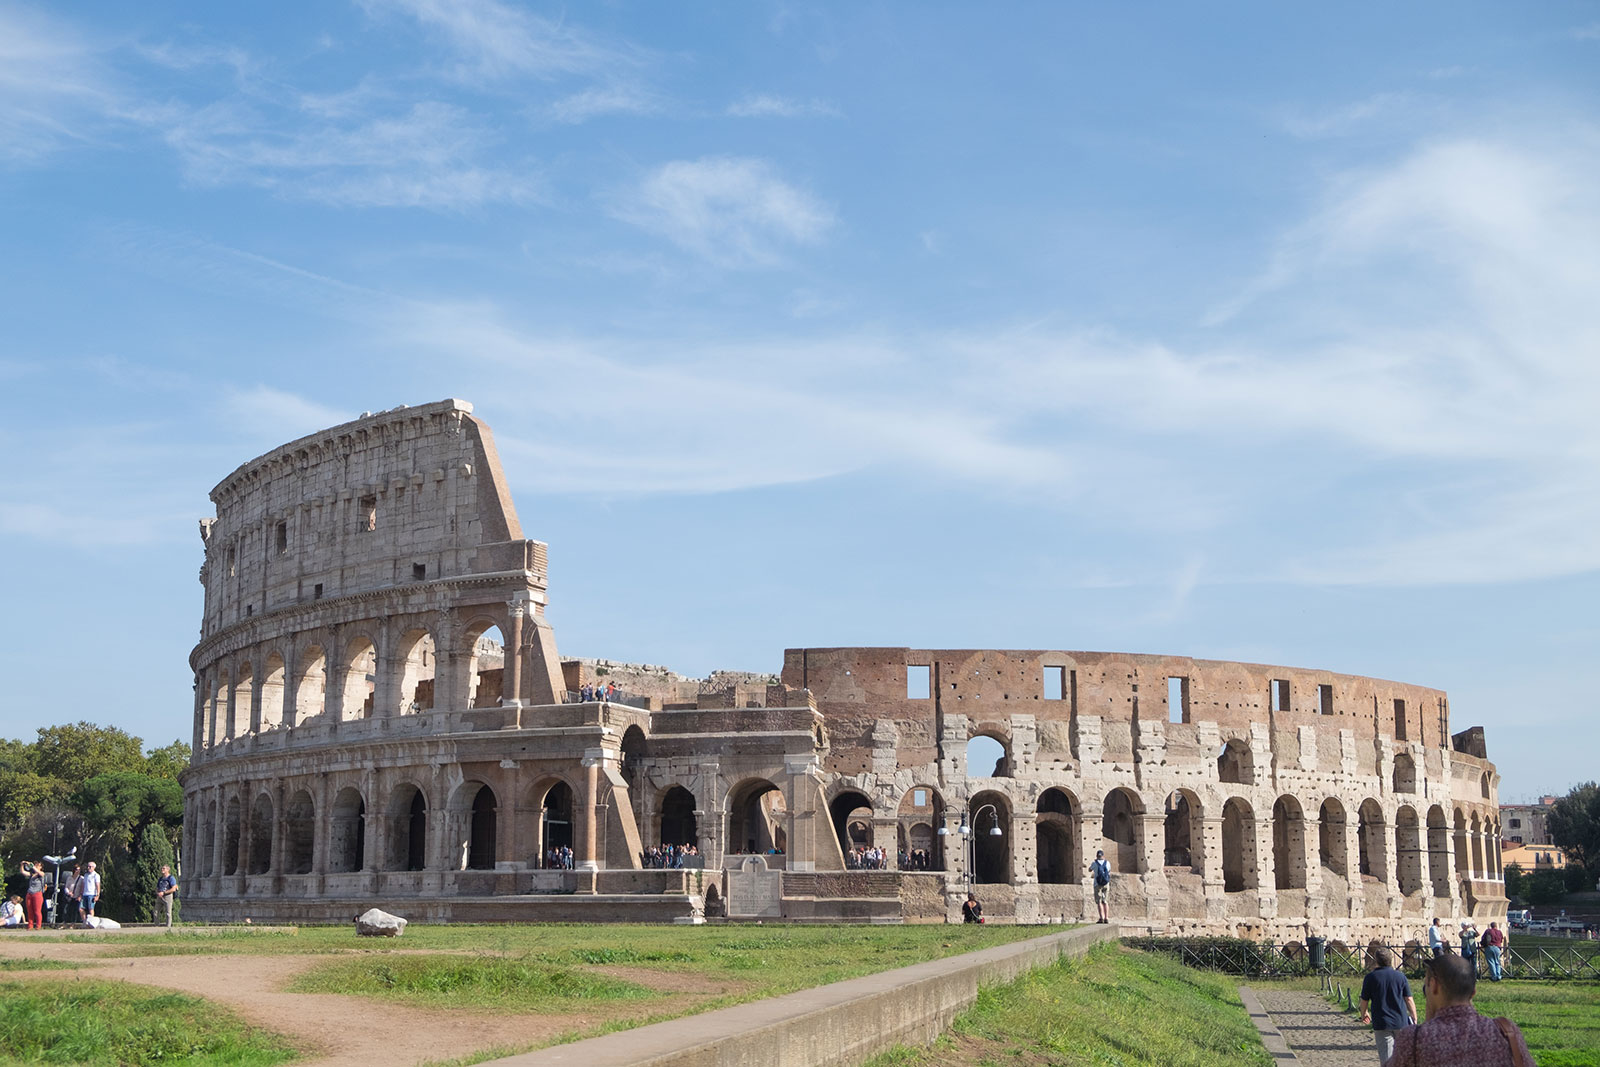 AncientRome_Colosseum_0